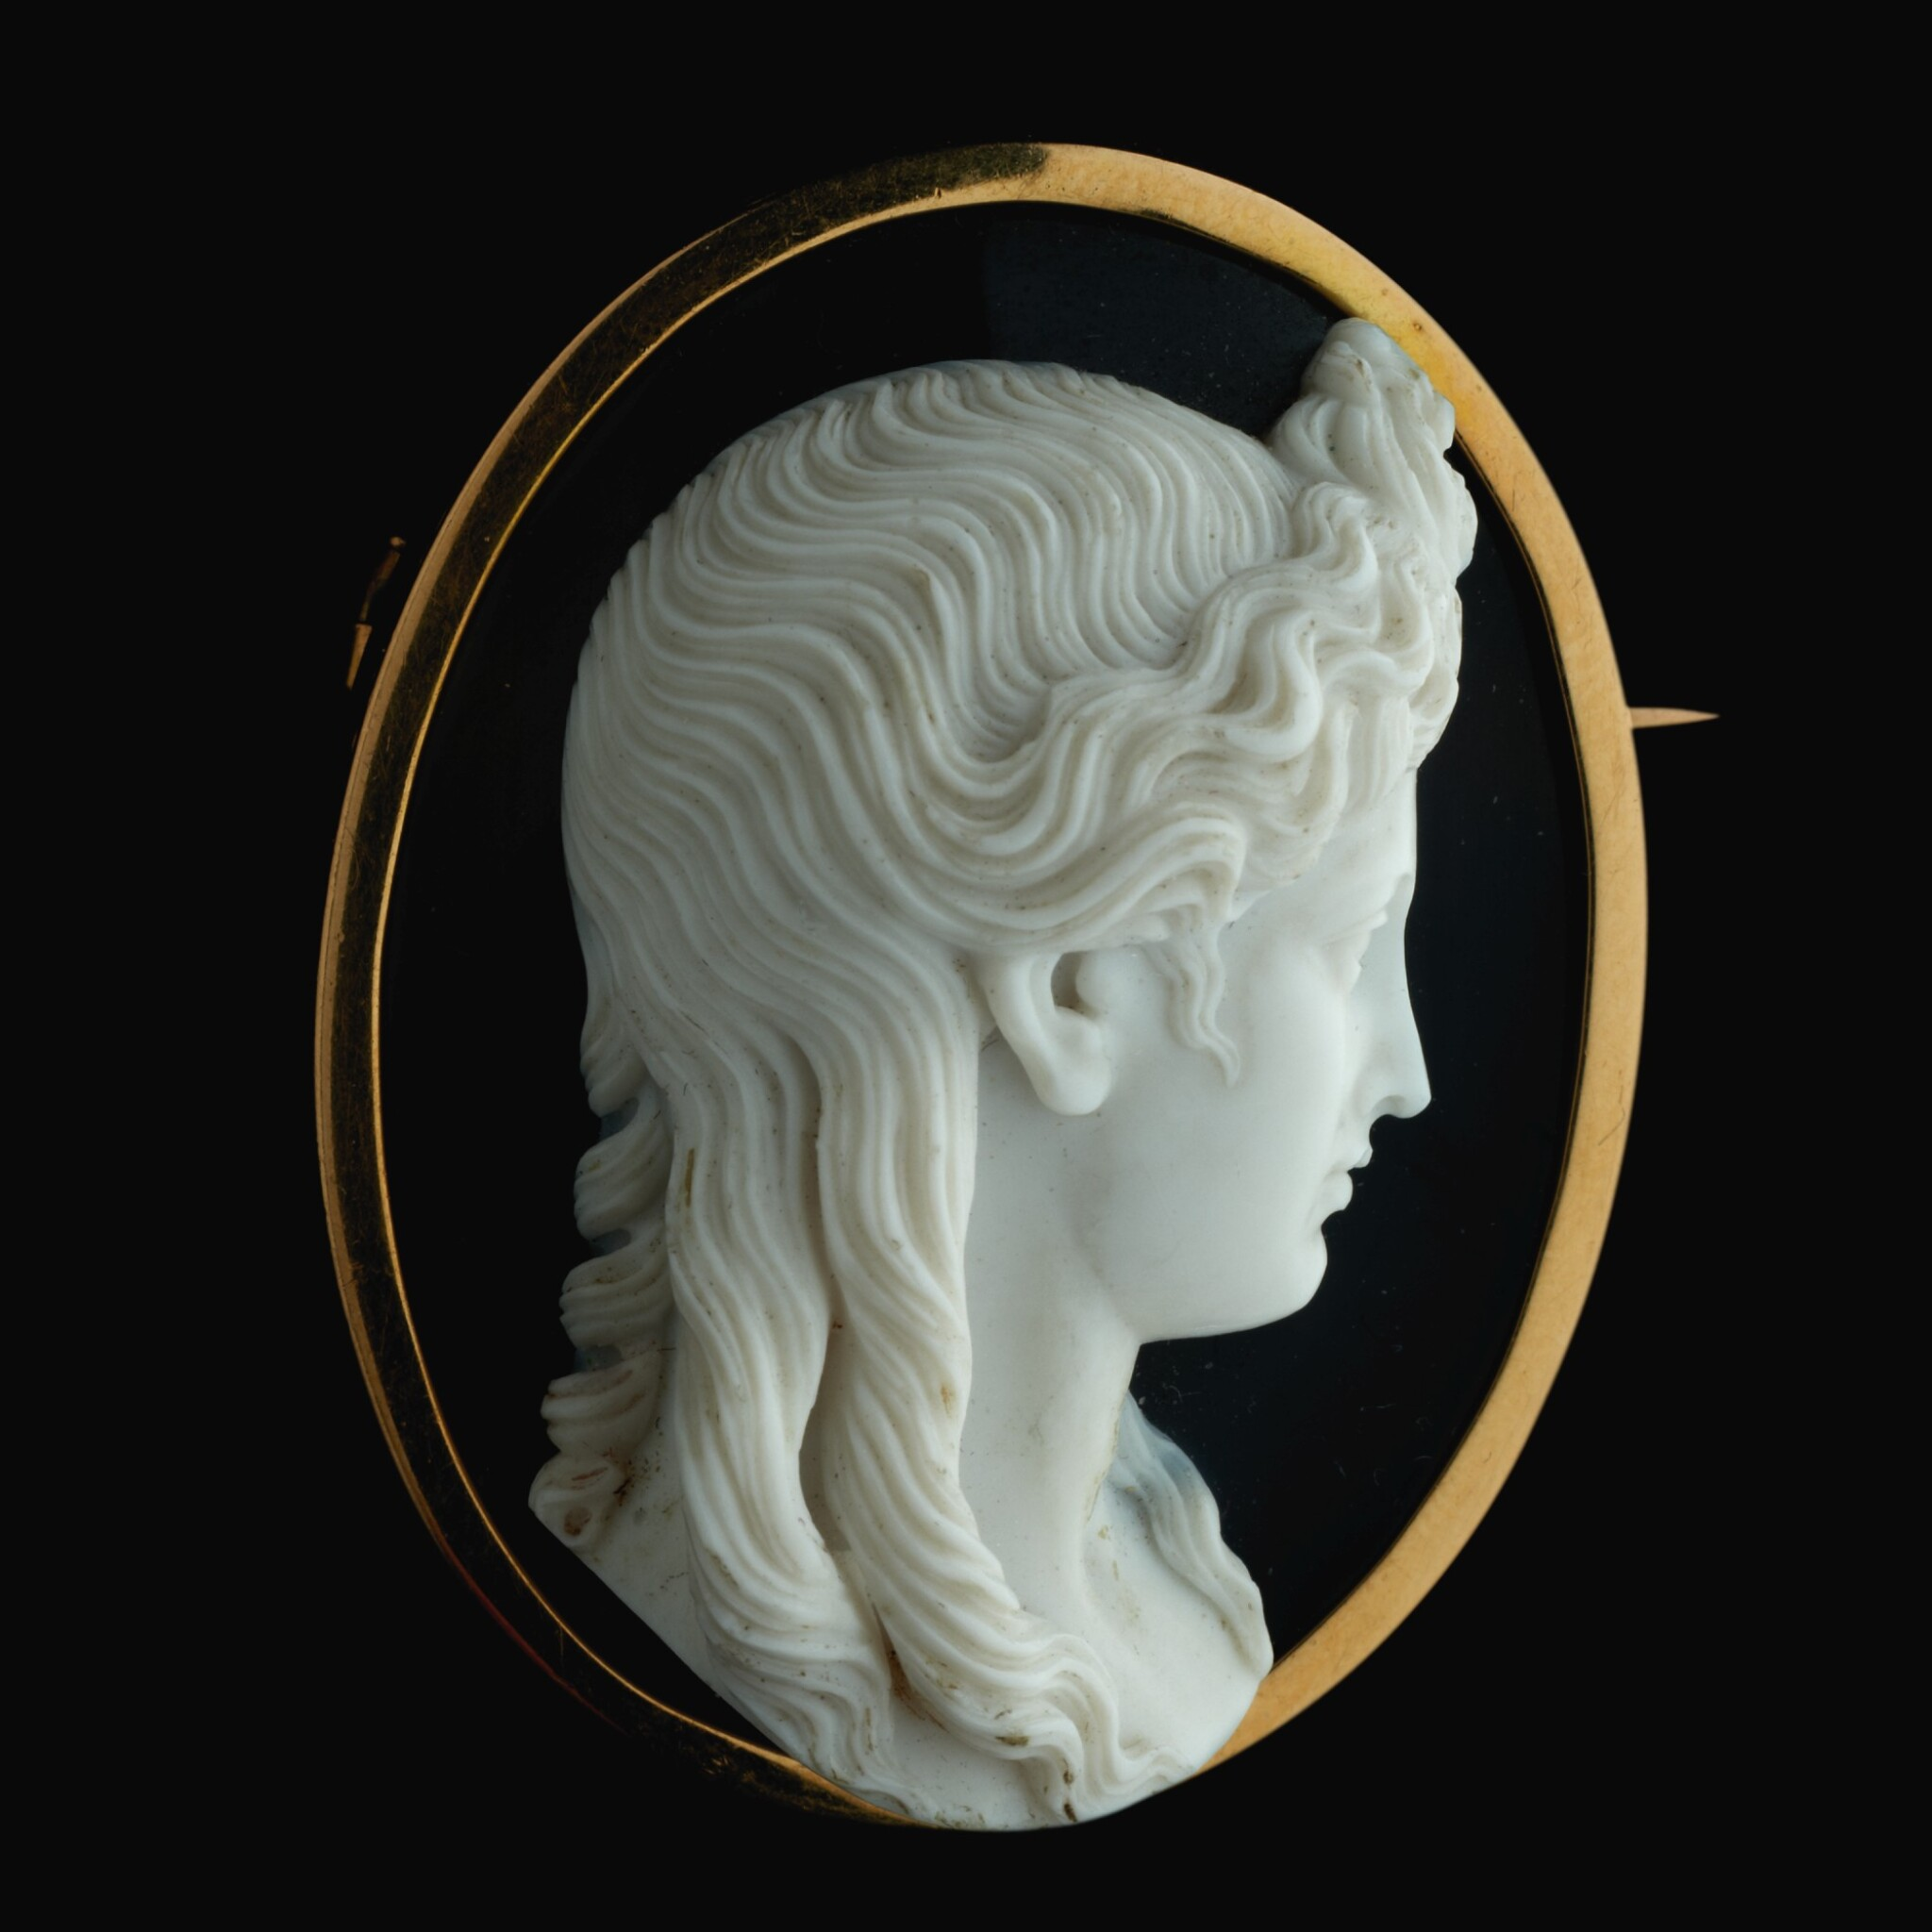 View full screen - View 1 of Lot 59. ATTRIBUTED TO ANGELO (1754-CIRCA 1816) OR NICCOLÒ AMASTINI (1780-1851)  ITALIAN, ROME, EARLY 19TH CENTURY  AFTER THE ANTIQUE | CAMEO WITH APOLLO.